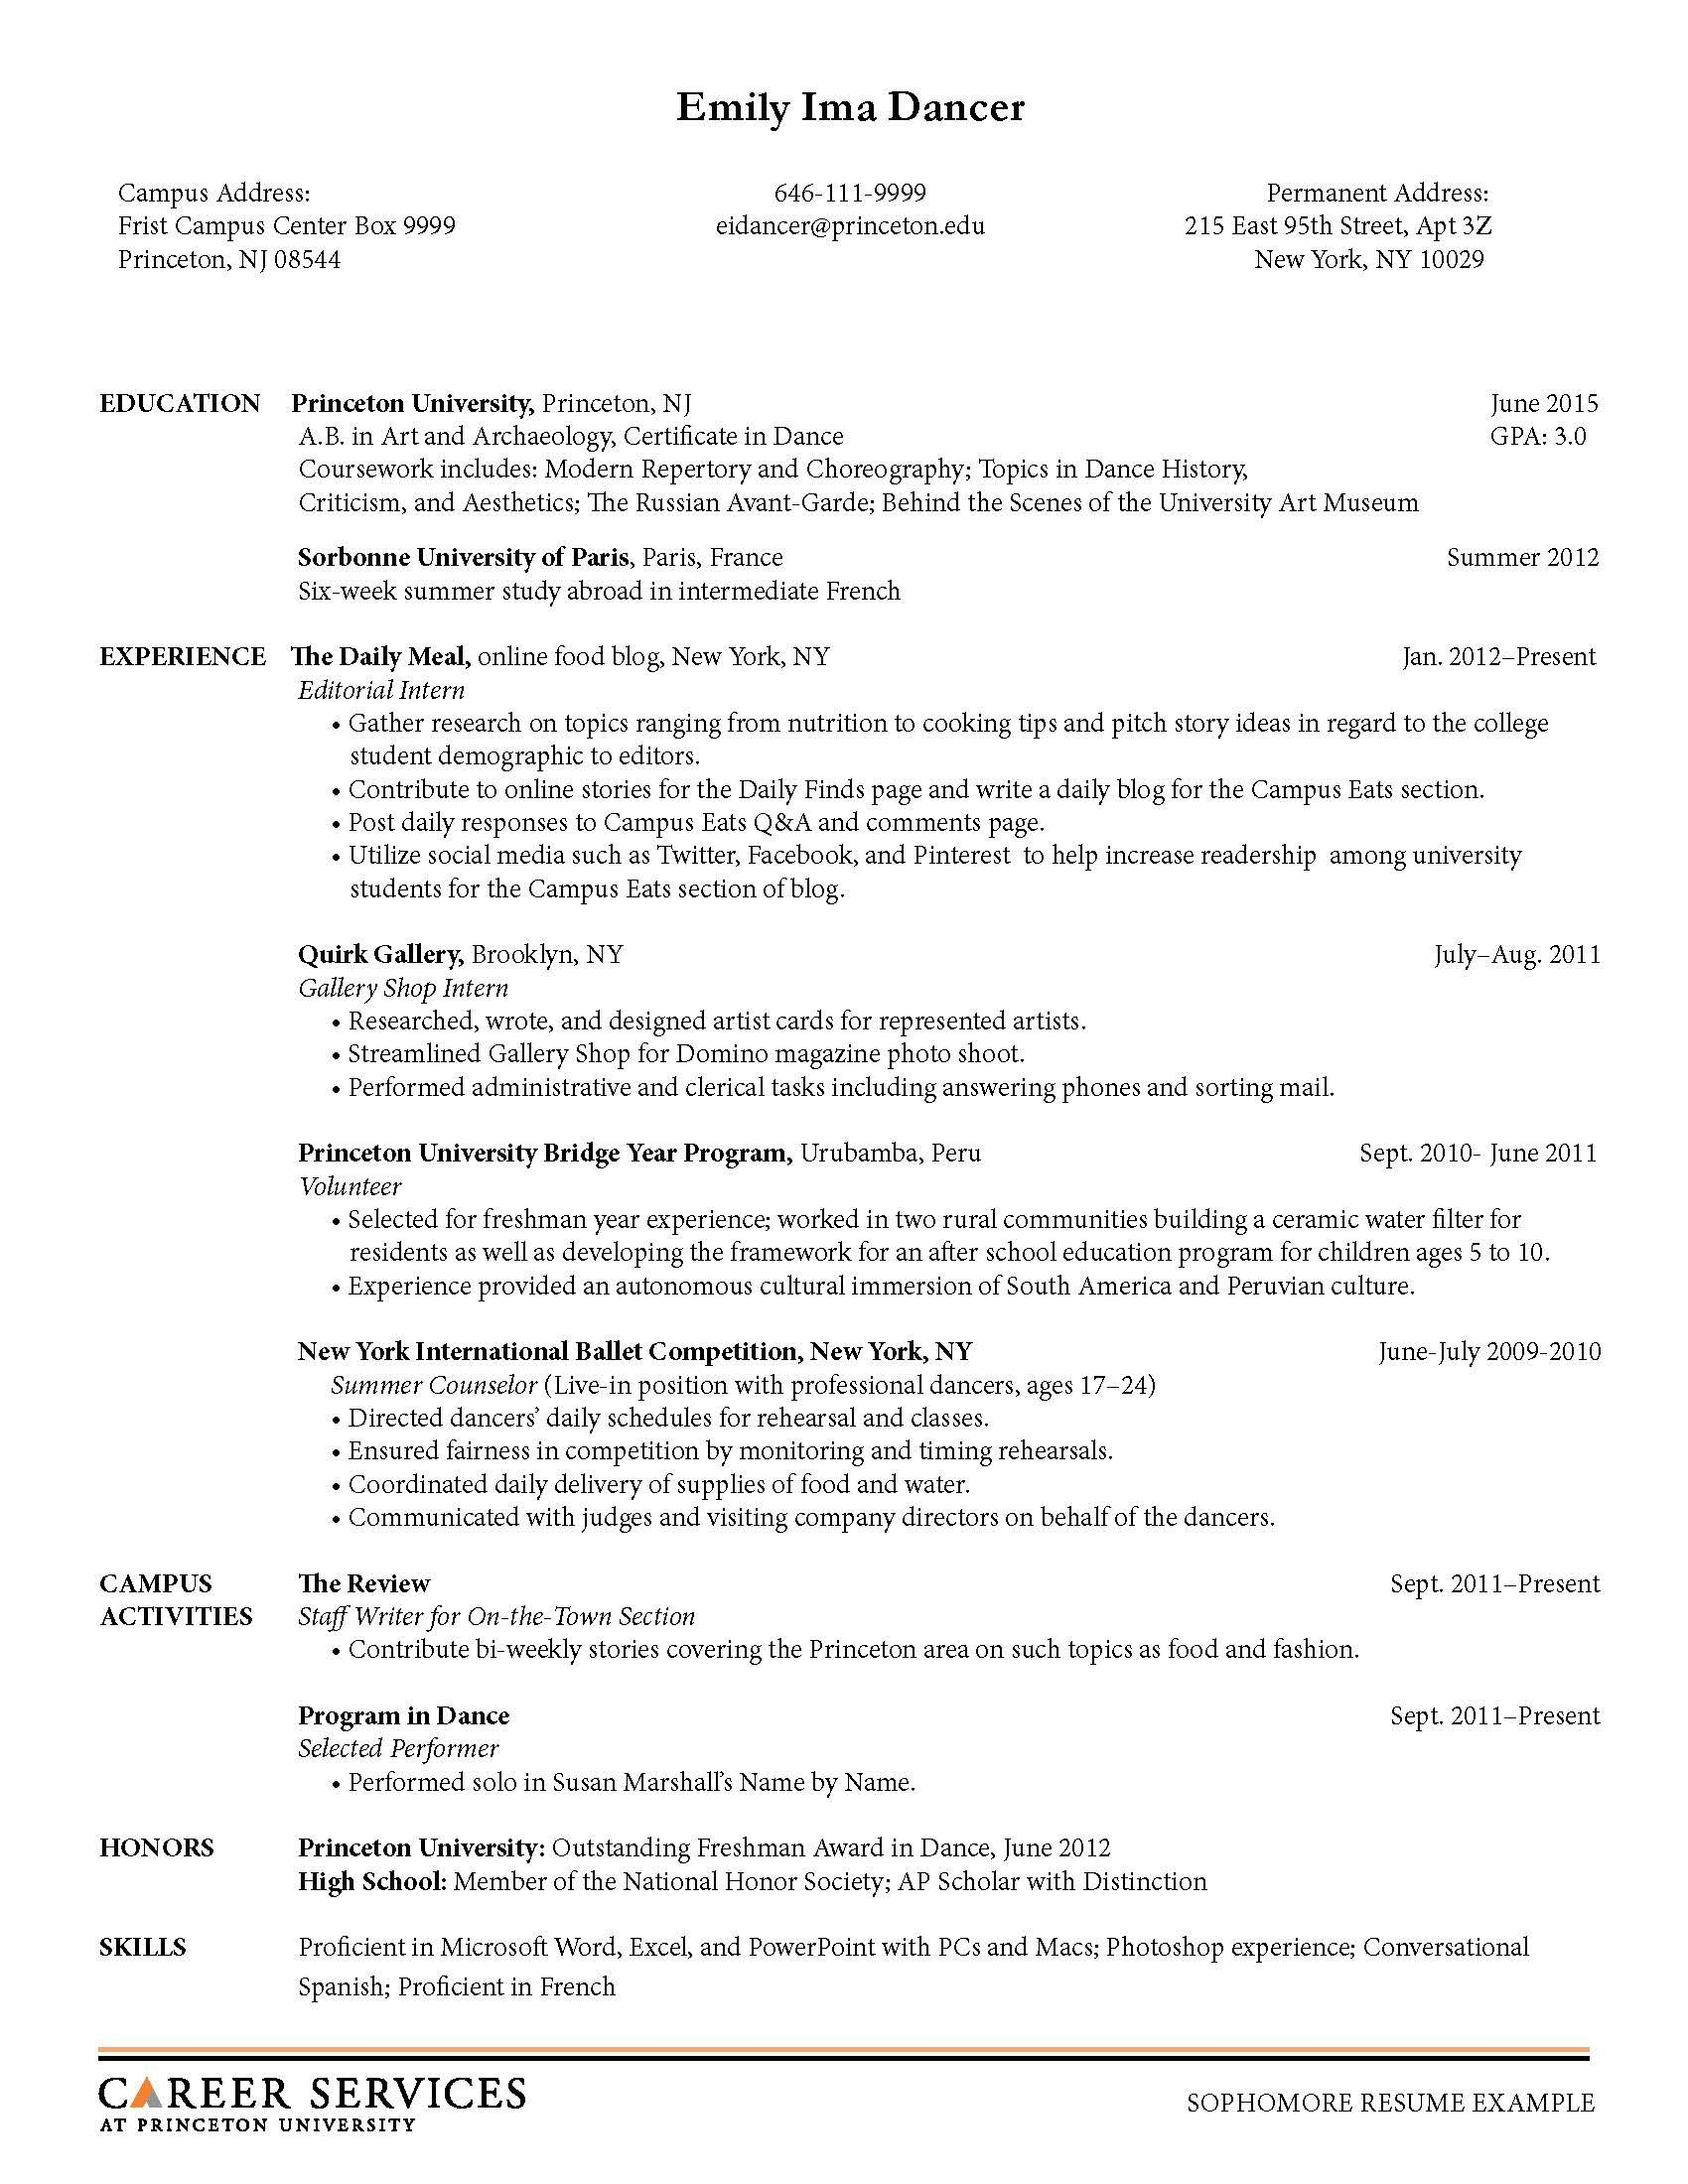 Opposenewapstandardsus  Inspiring Sample Resume Resume And Career On Pinterest With Interesting How To Structure A Resume Besides Jobs Resume Furthermore Resume Service Phoenix With Attractive What Is An Objective For A Resume Also Define Functional Resume In Addition Hair Stylist Resume Objective And Sales Objective Resume As Well As Can A Resume Be More Than One Page Additionally Waitress Resume Objective From Pinterestcom With Opposenewapstandardsus  Interesting Sample Resume Resume And Career On Pinterest With Attractive How To Structure A Resume Besides Jobs Resume Furthermore Resume Service Phoenix And Inspiring What Is An Objective For A Resume Also Define Functional Resume In Addition Hair Stylist Resume Objective From Pinterestcom